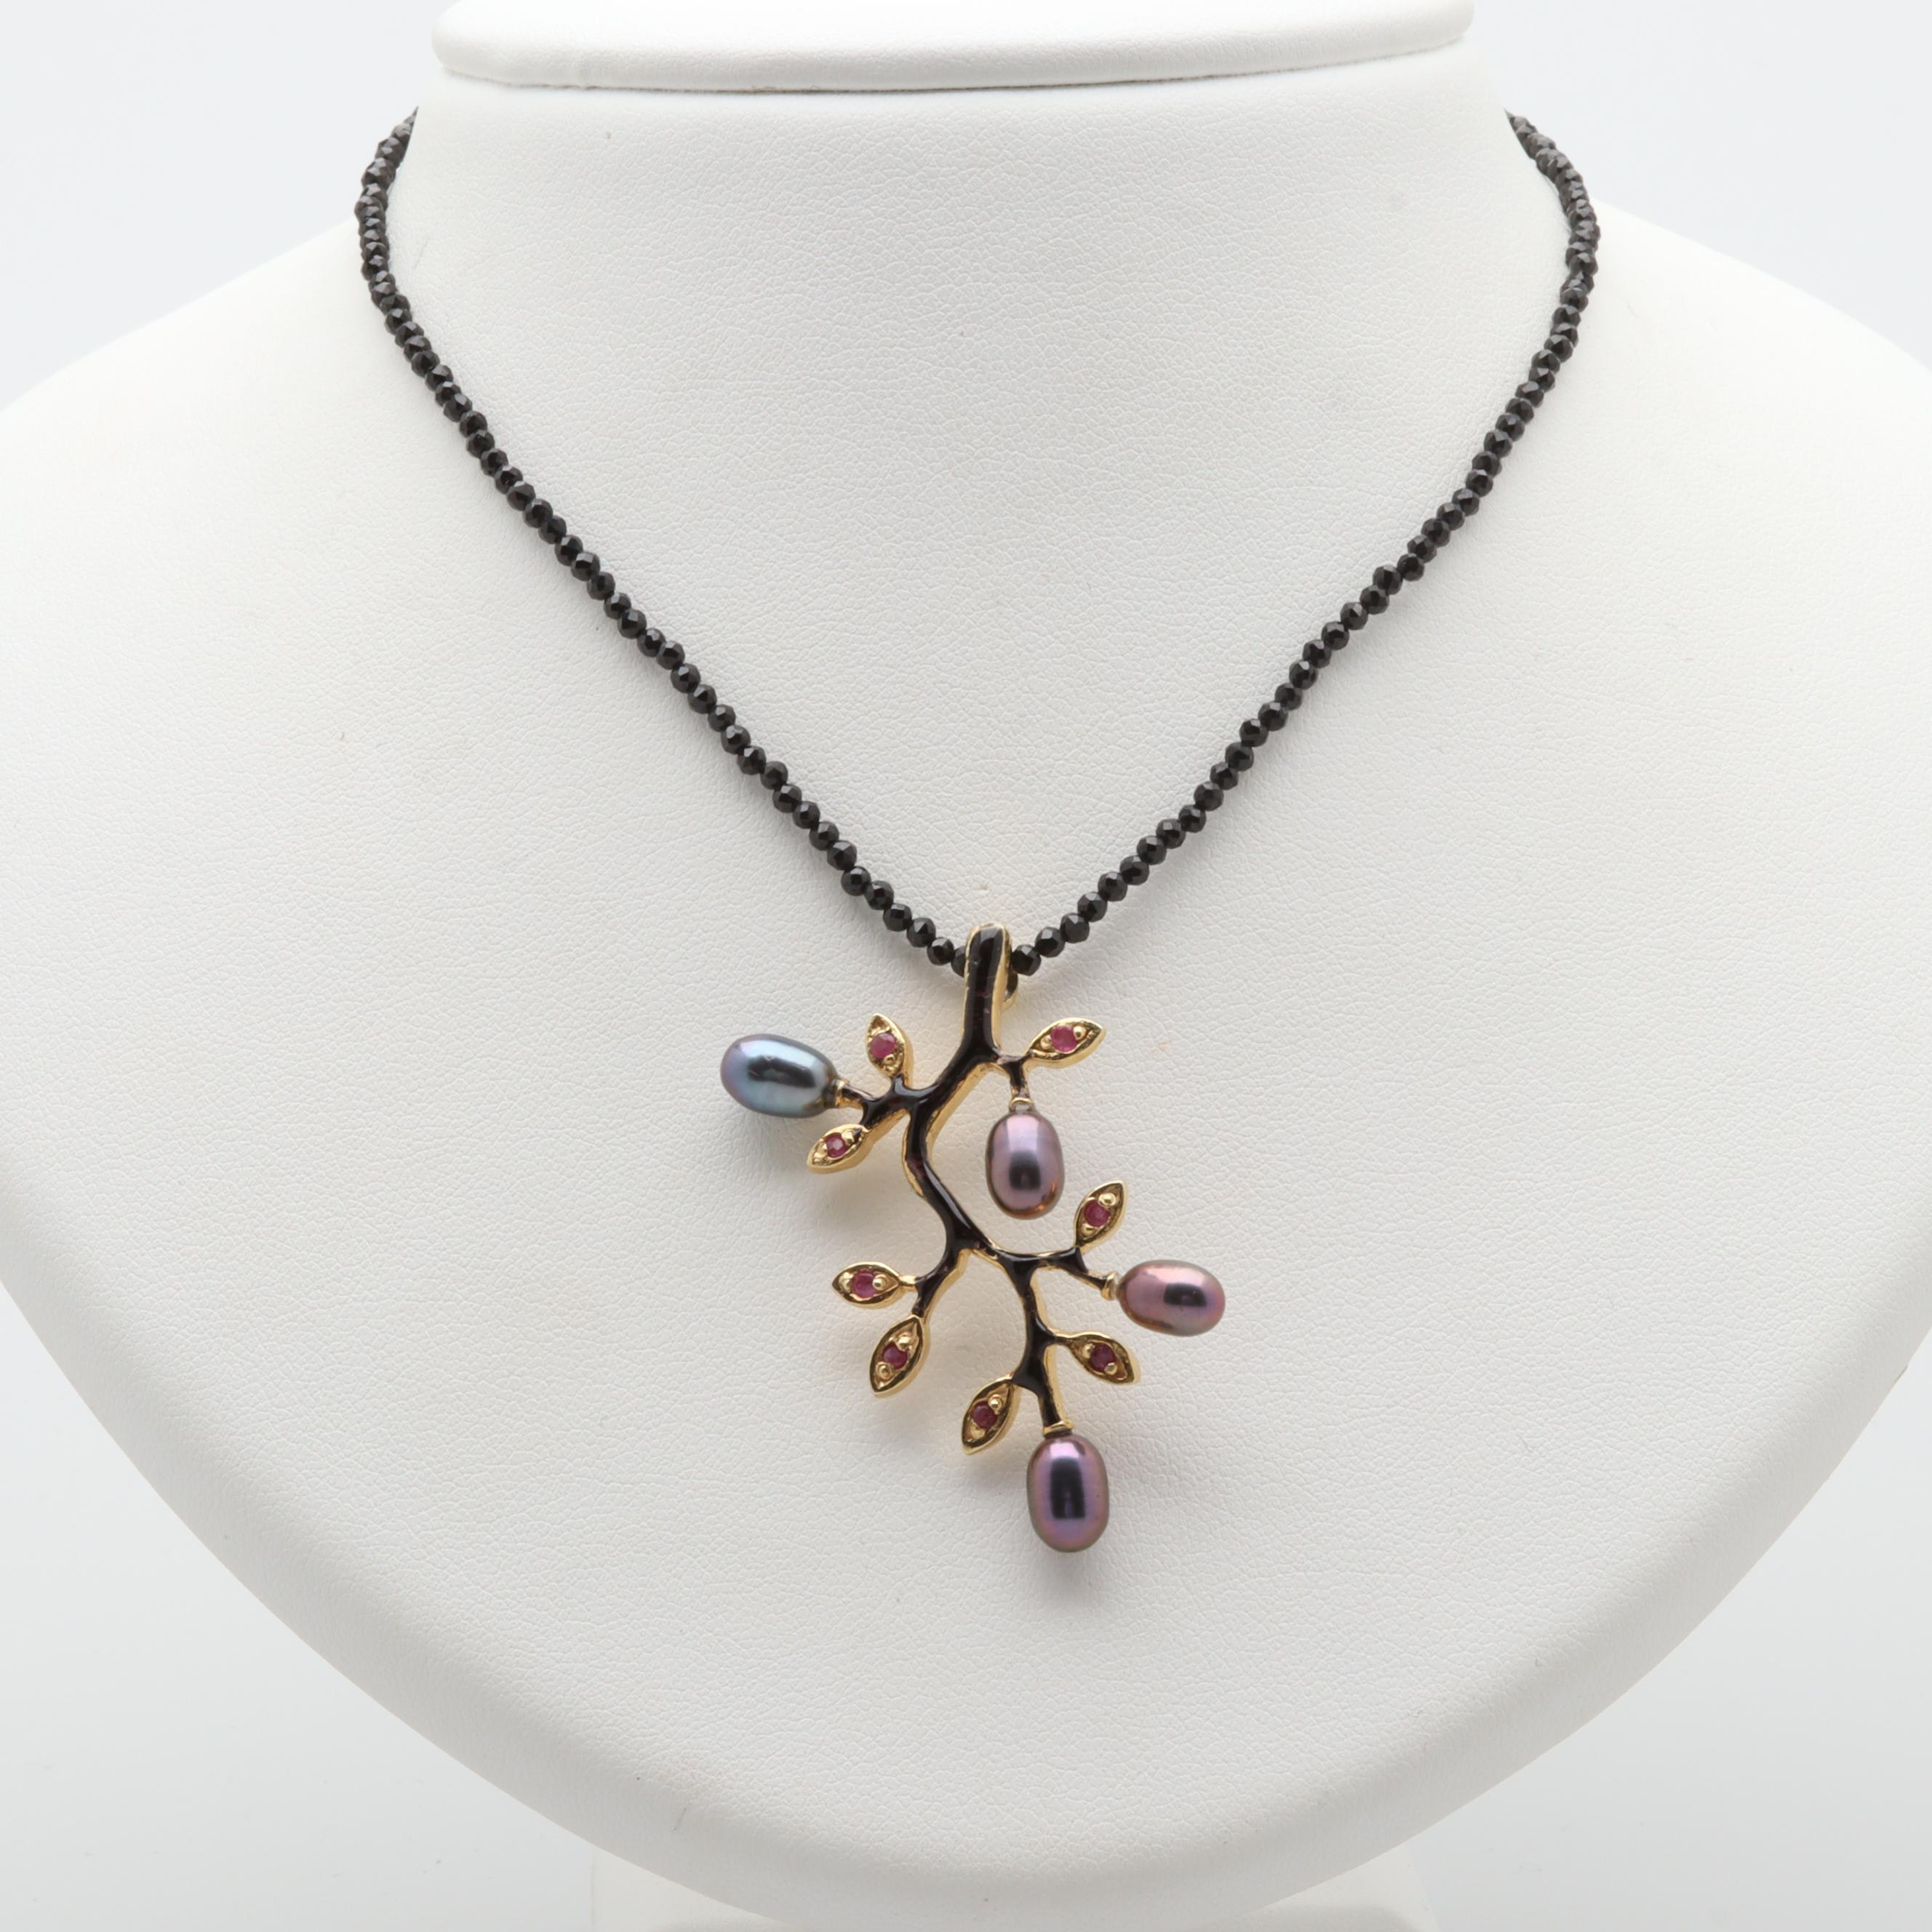 Gold Wash on Sterling Ruby, Cultured Pearl, and Black Cubic Zirconia Necklace